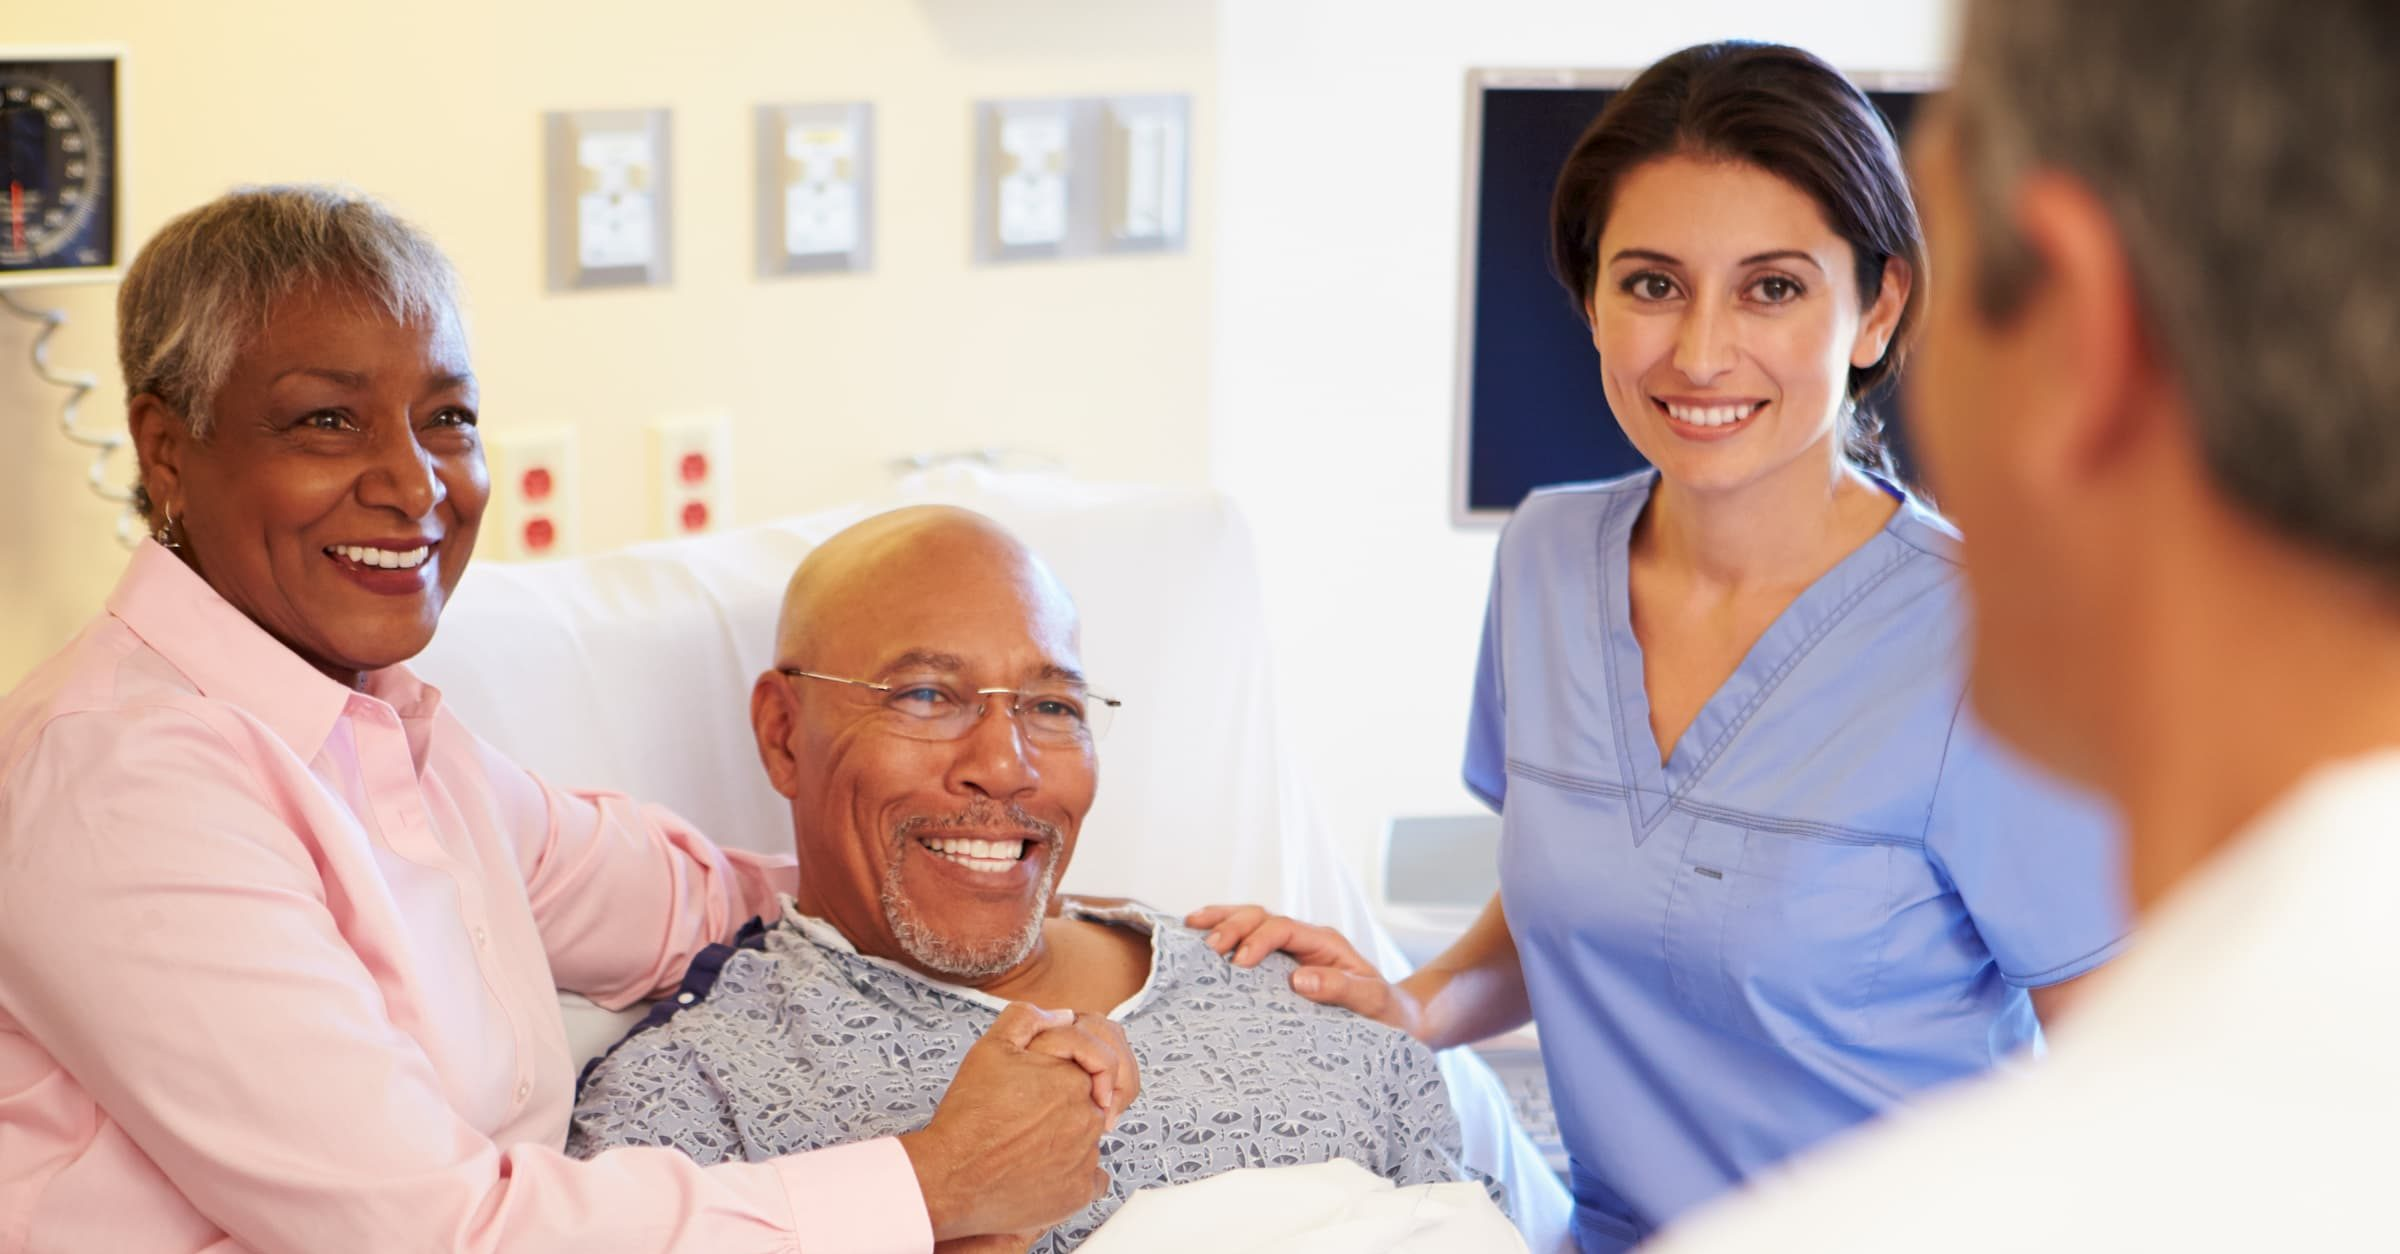 black woman hugging black man in hospital bed with nurse and doctor standing around them